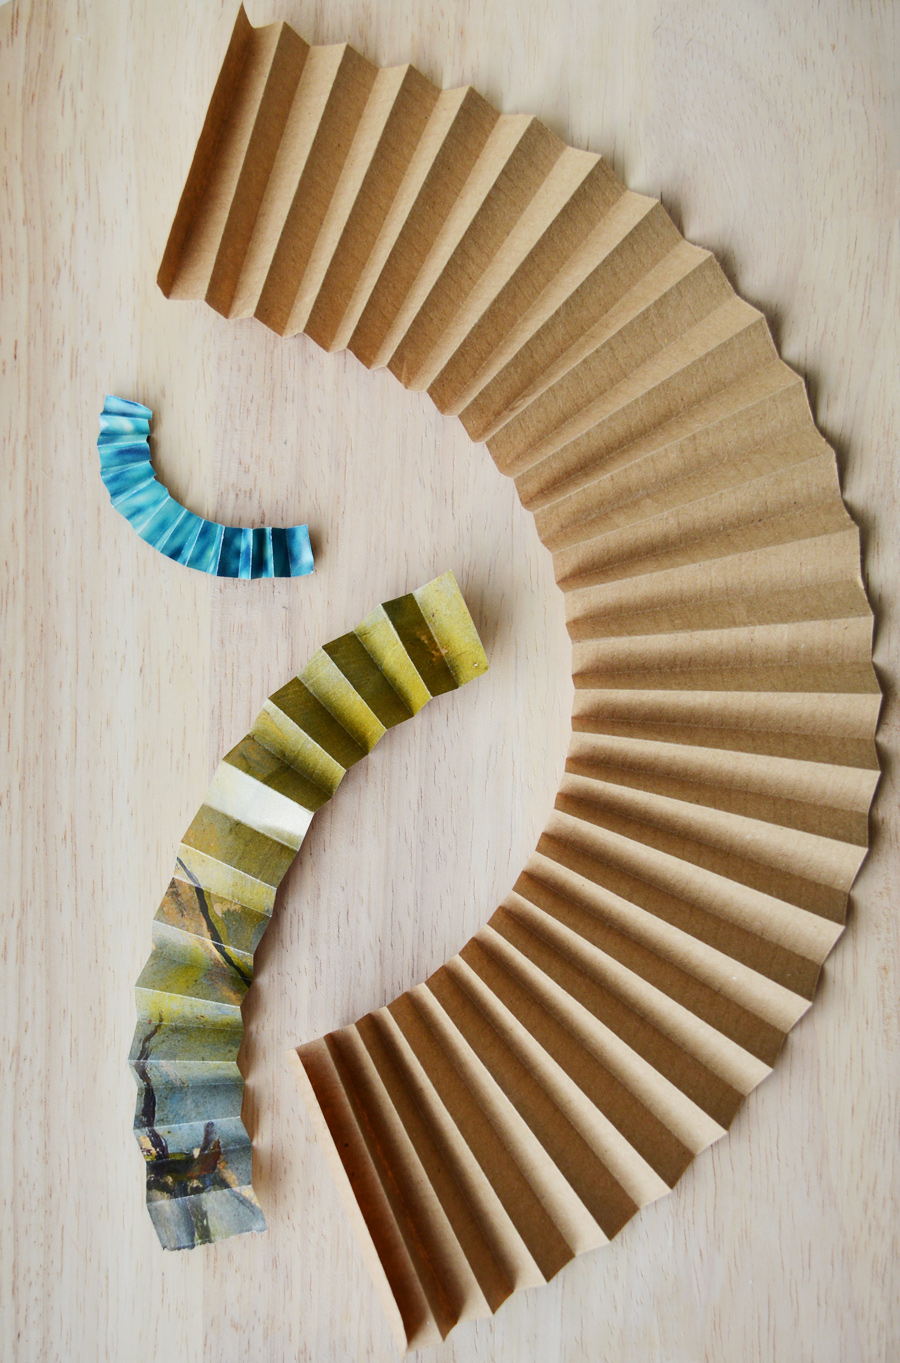 DIY paper wheels (at the exact size you want them) craftingfingers.co.uk #crafts #diy